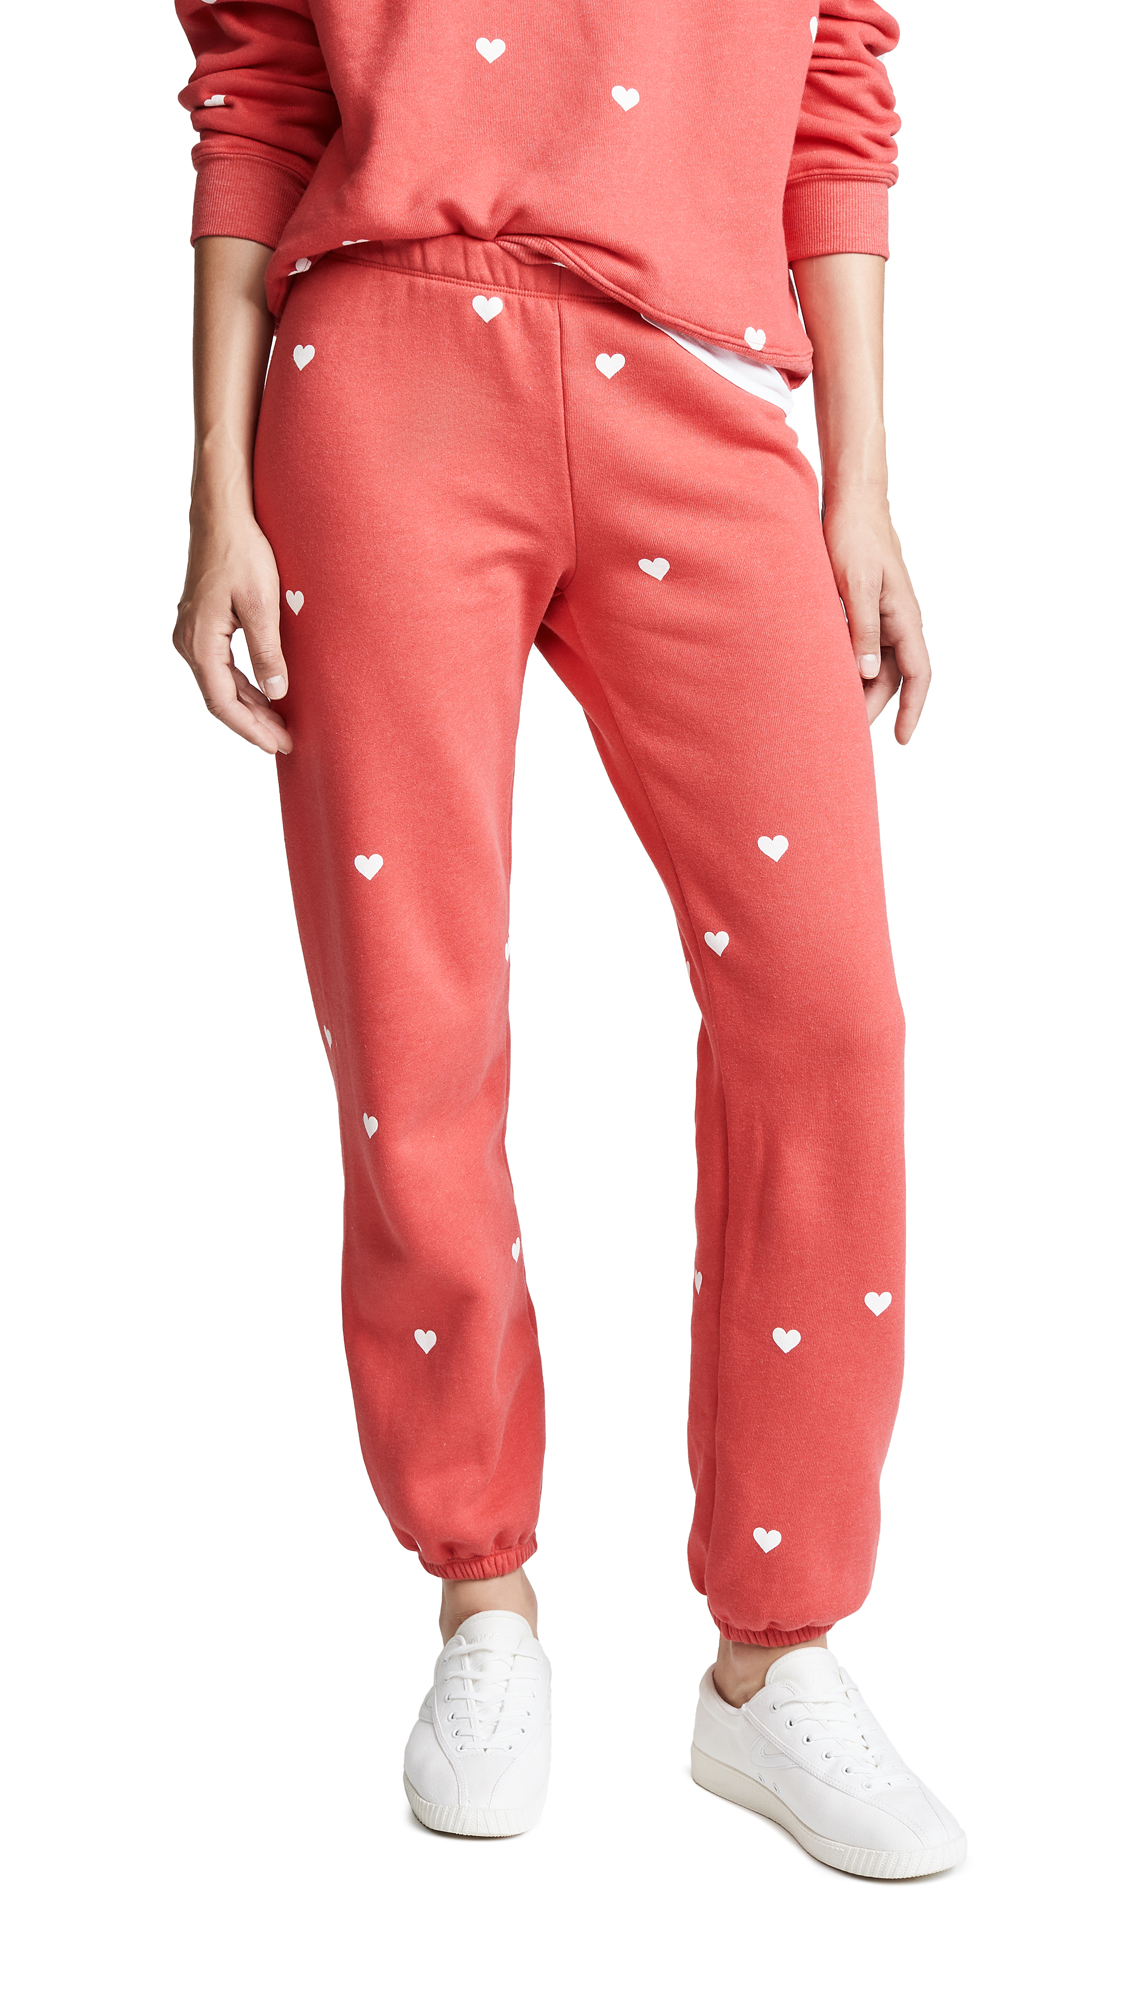 Lovestruck Sweatpants